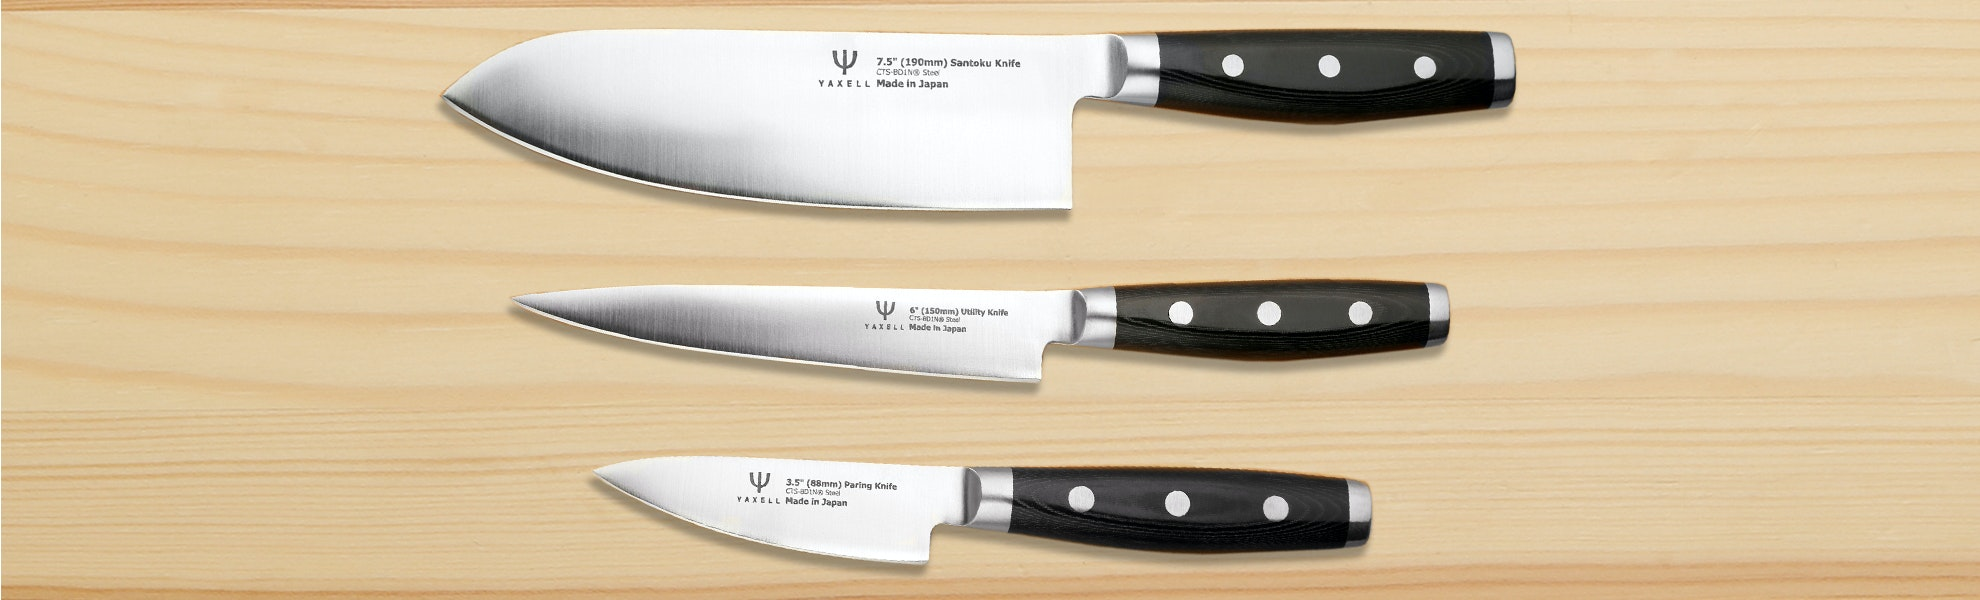 Dragon by Yaxell Japanese Kitchen Knives (Set of 3)